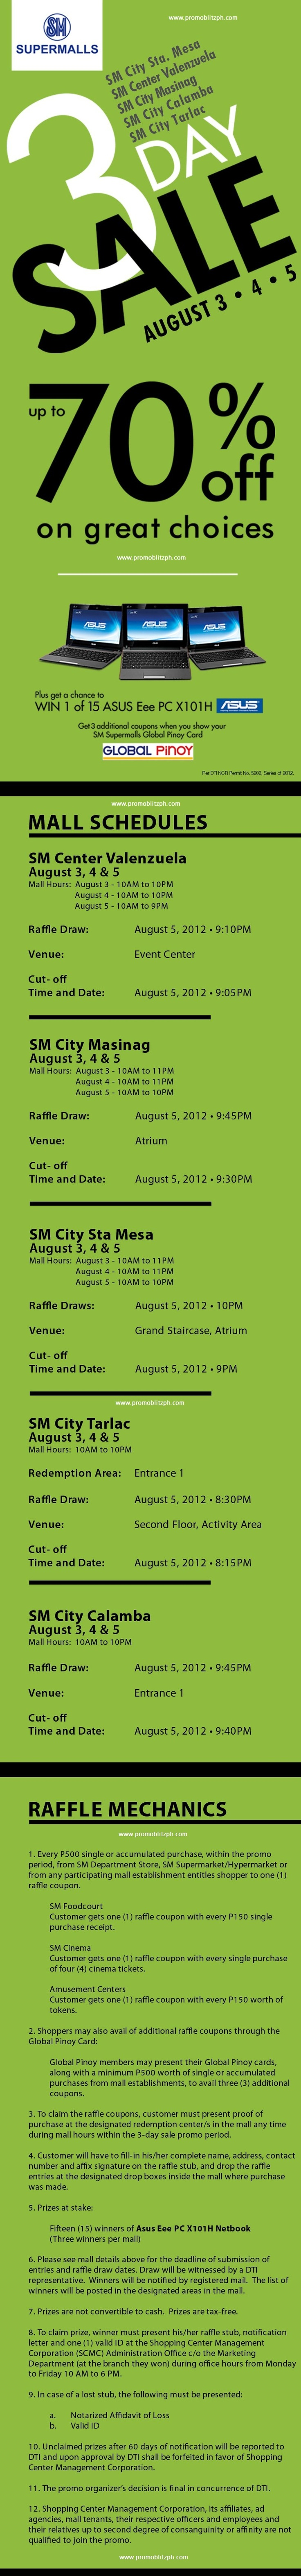 SM Supermalls 3 Day Sale: August 3 to 5 http://www.promoblitzph.com/sm-supermalls-3-day-sale-august-3-to-5/